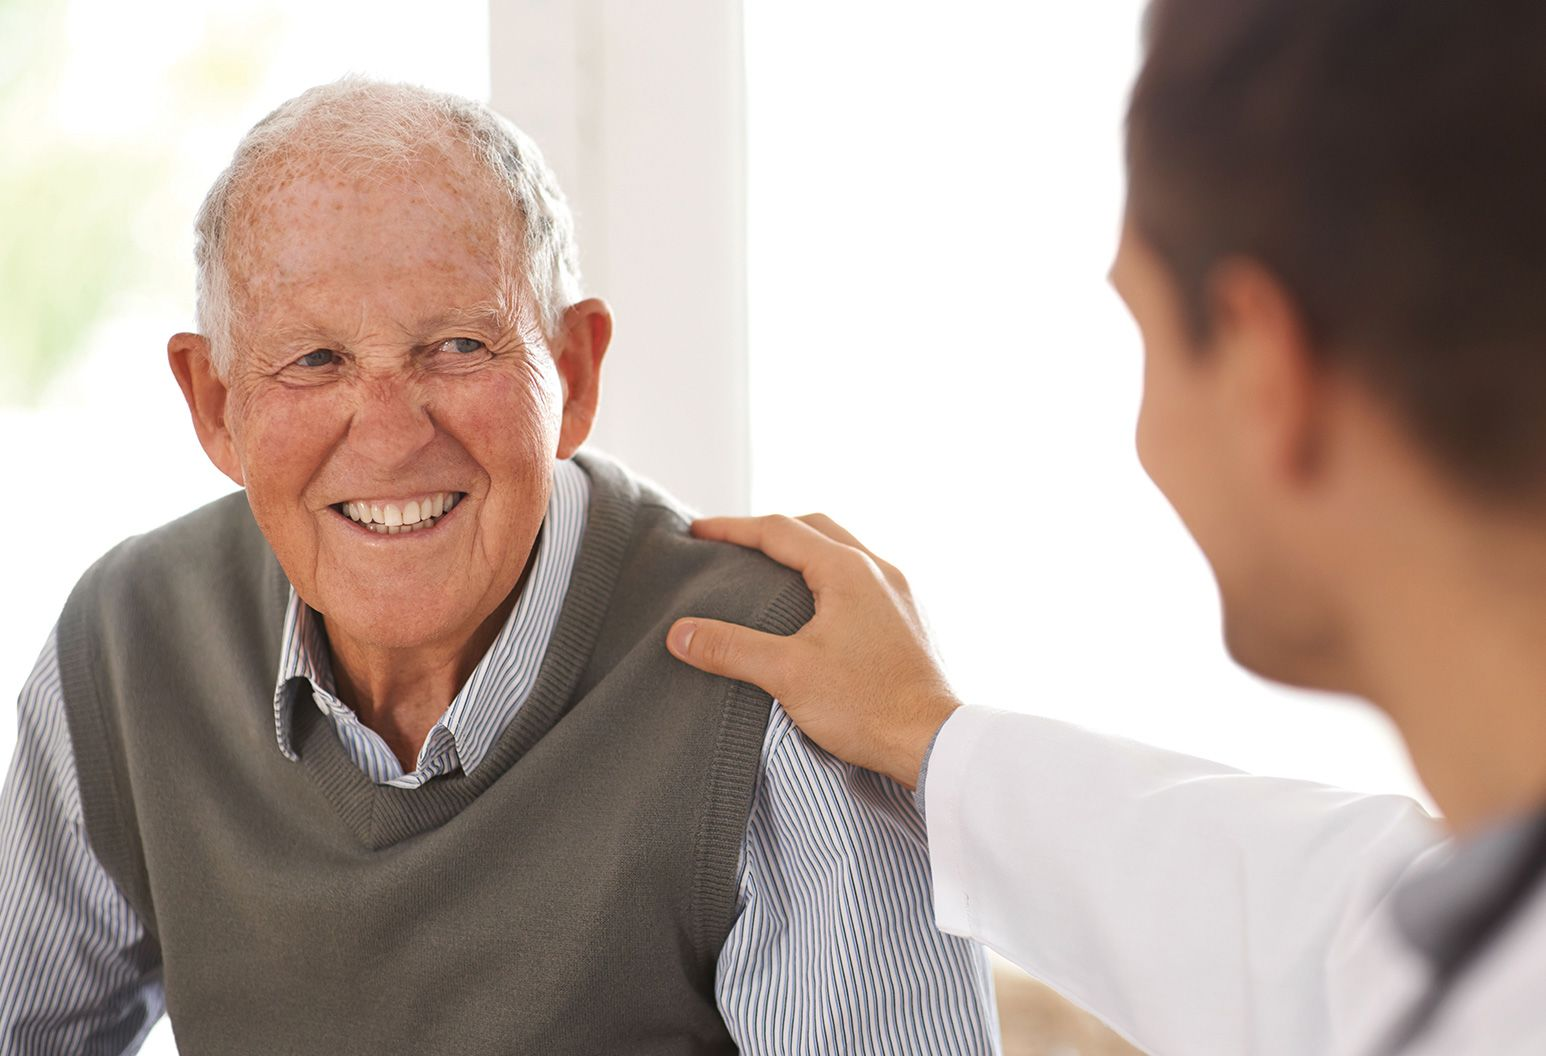 Elderly man wearing a blue shirt and grey sweater is smiling talking to a doctor who has his hand on the man's shoulder